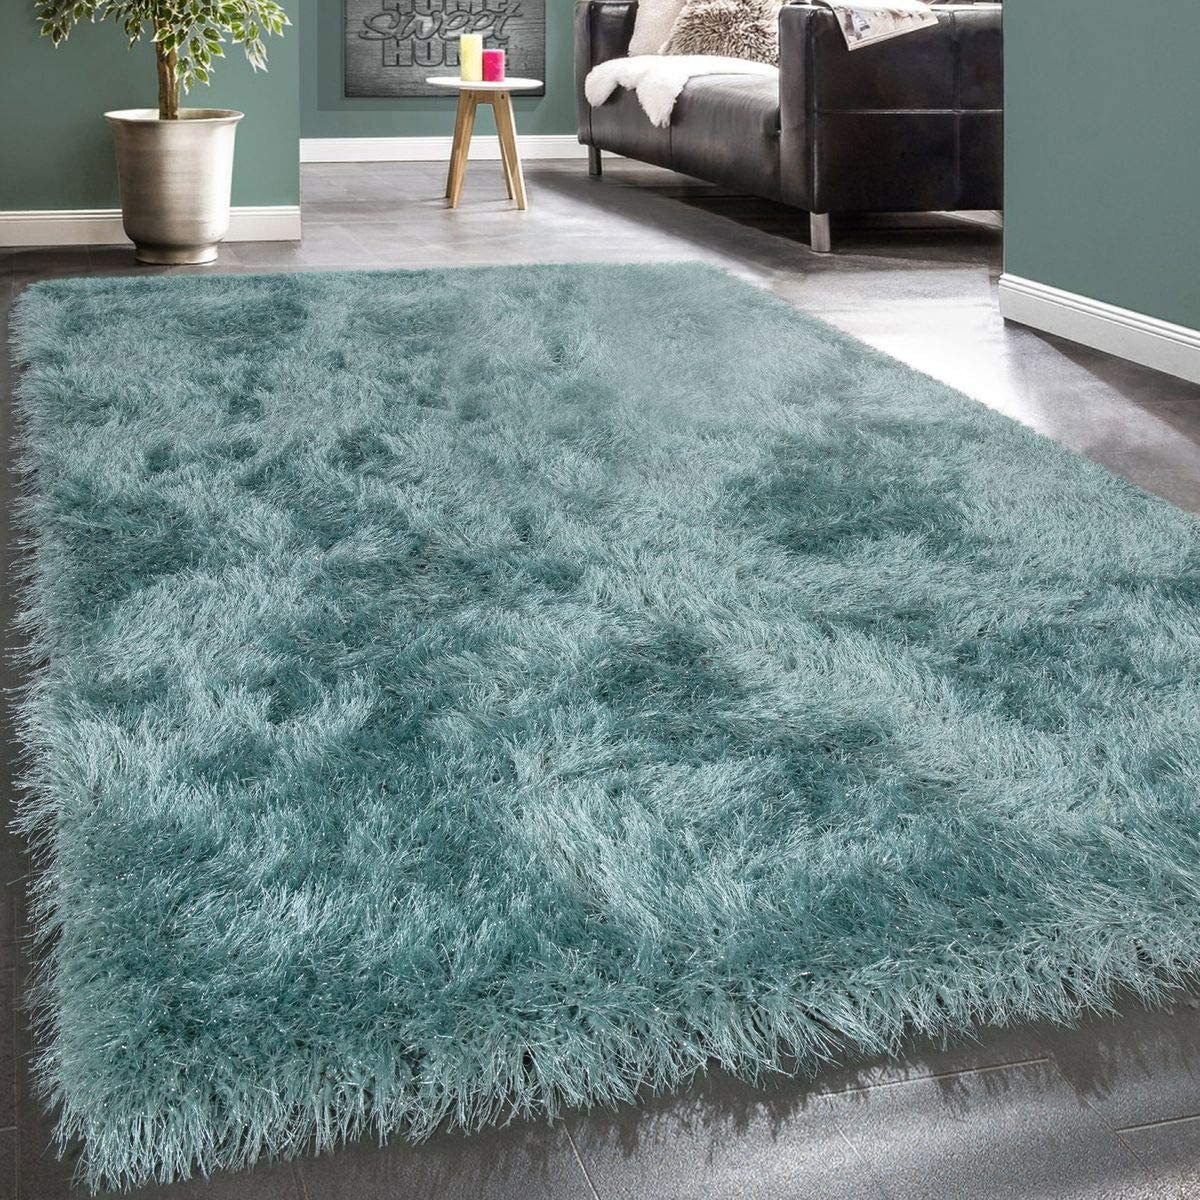 Paco Home Shag Rug High Pile Bedroom Living Room Fluffy Glossy Pastel Yarn, Size 2 x 3 3 , Colour Turquoise